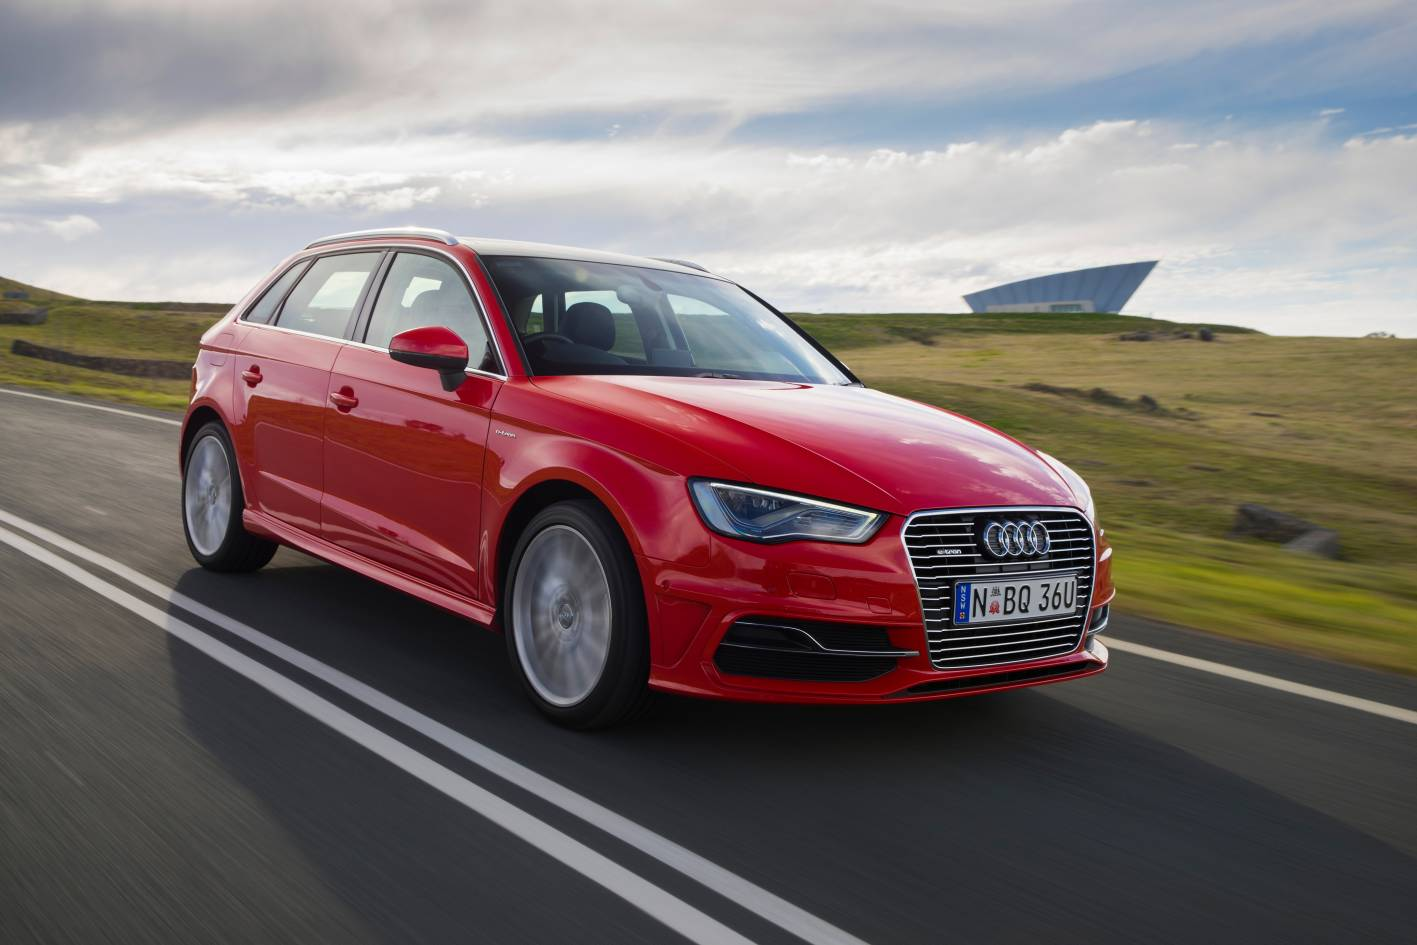 2016 Audi A3 Sportback e-tron pricing and specifications - Photos (1 ...